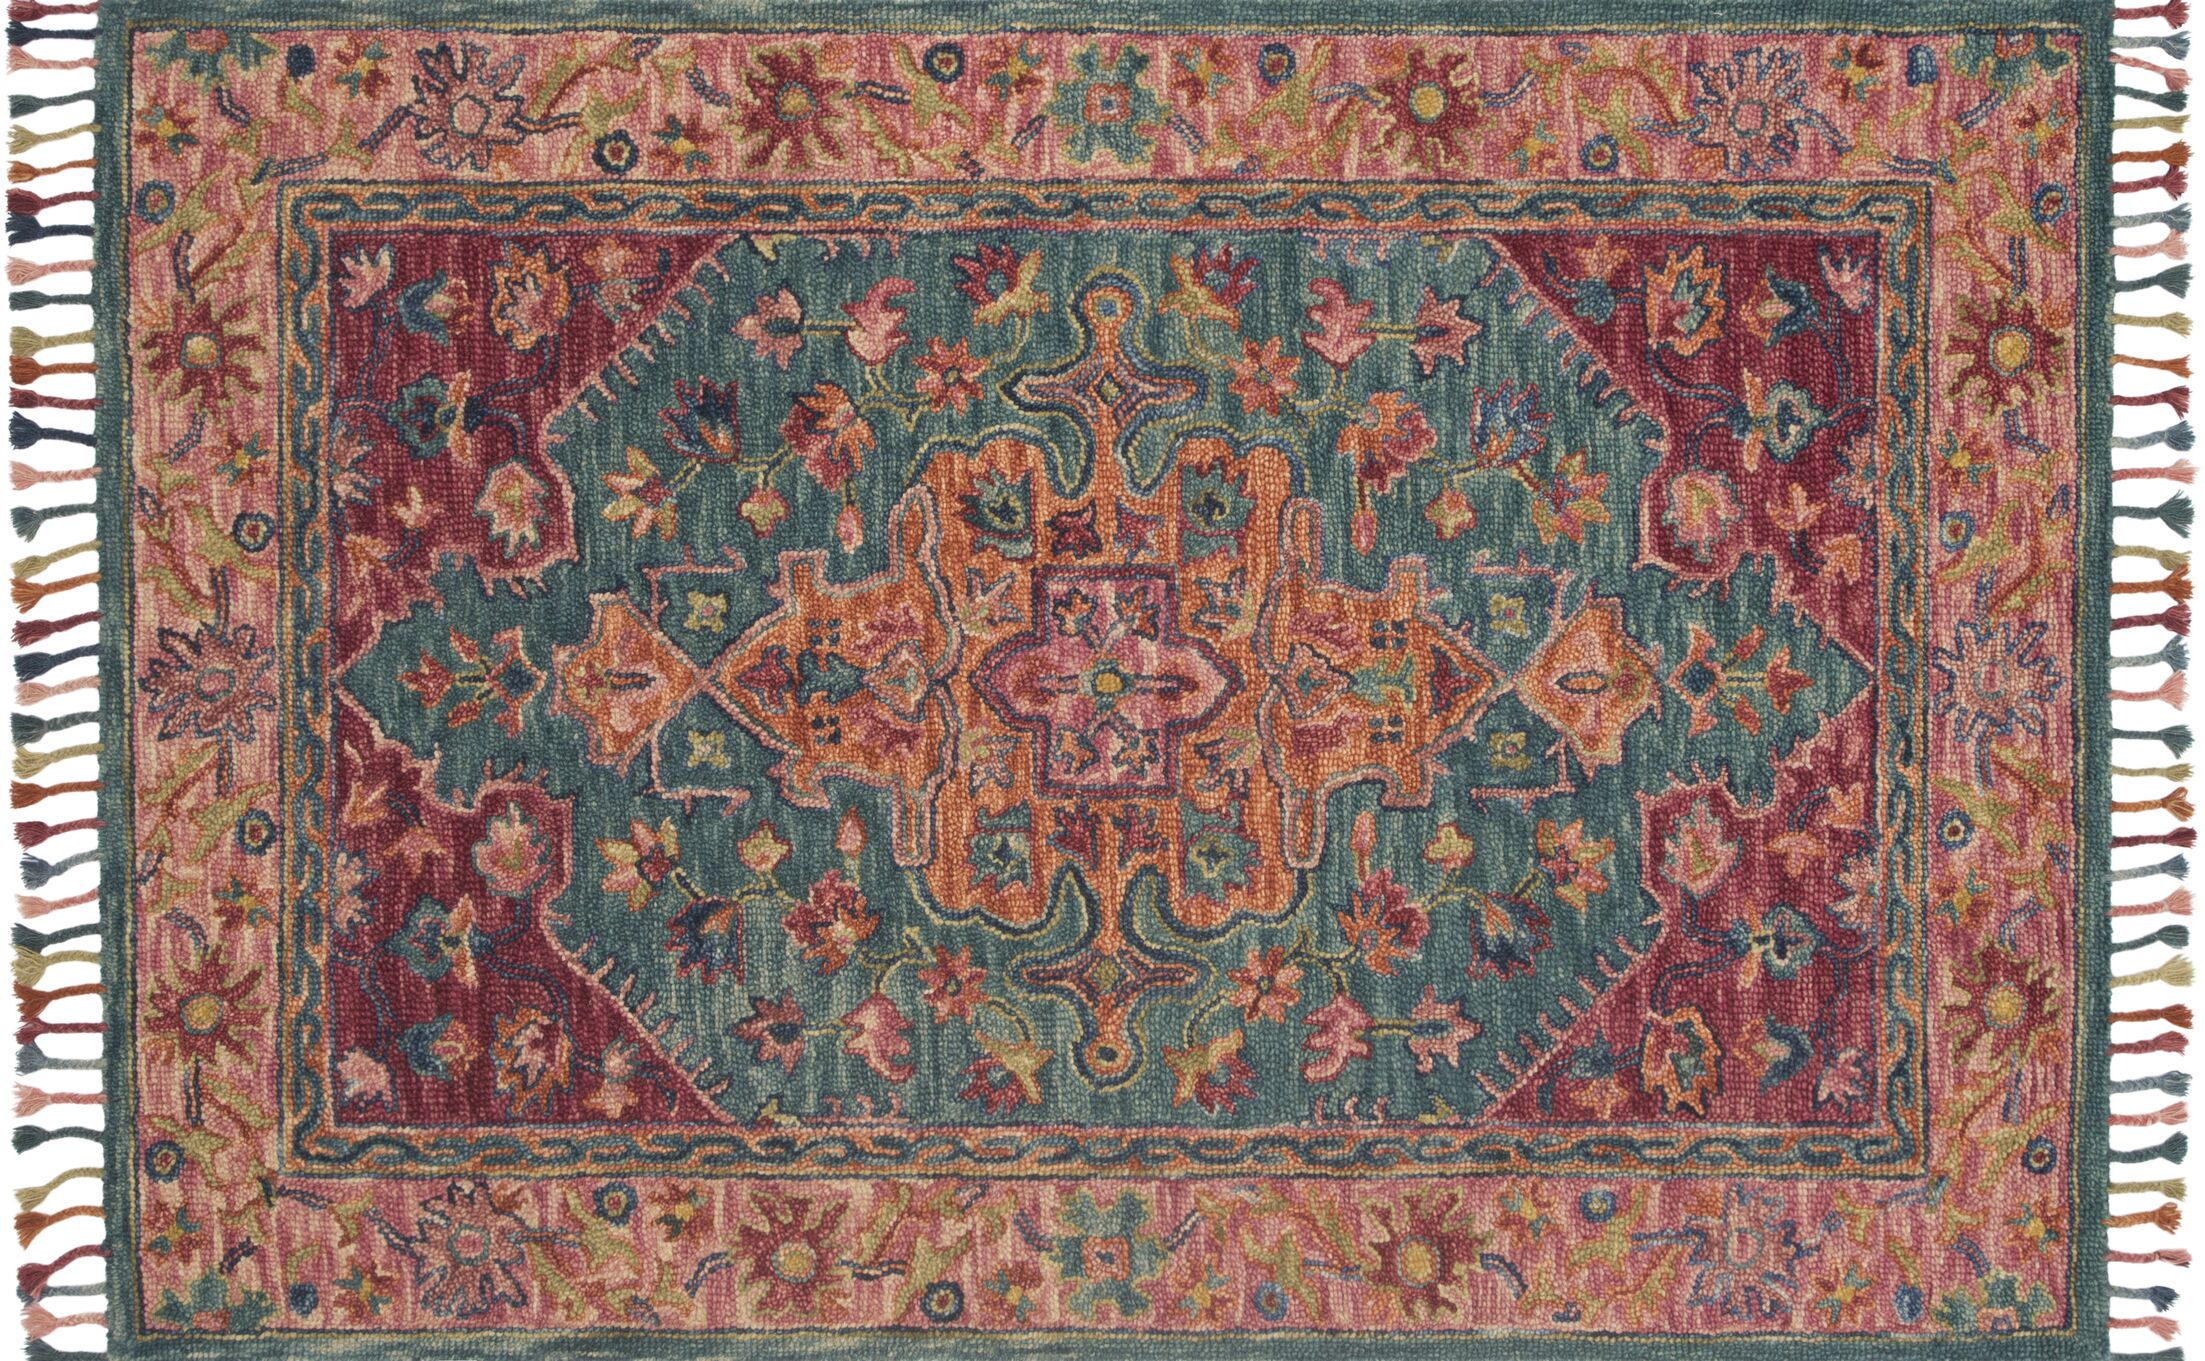 Oneil Hand-Hooked Wool Teal/Berry Area Rug Rug Size: Rectangle 2'6